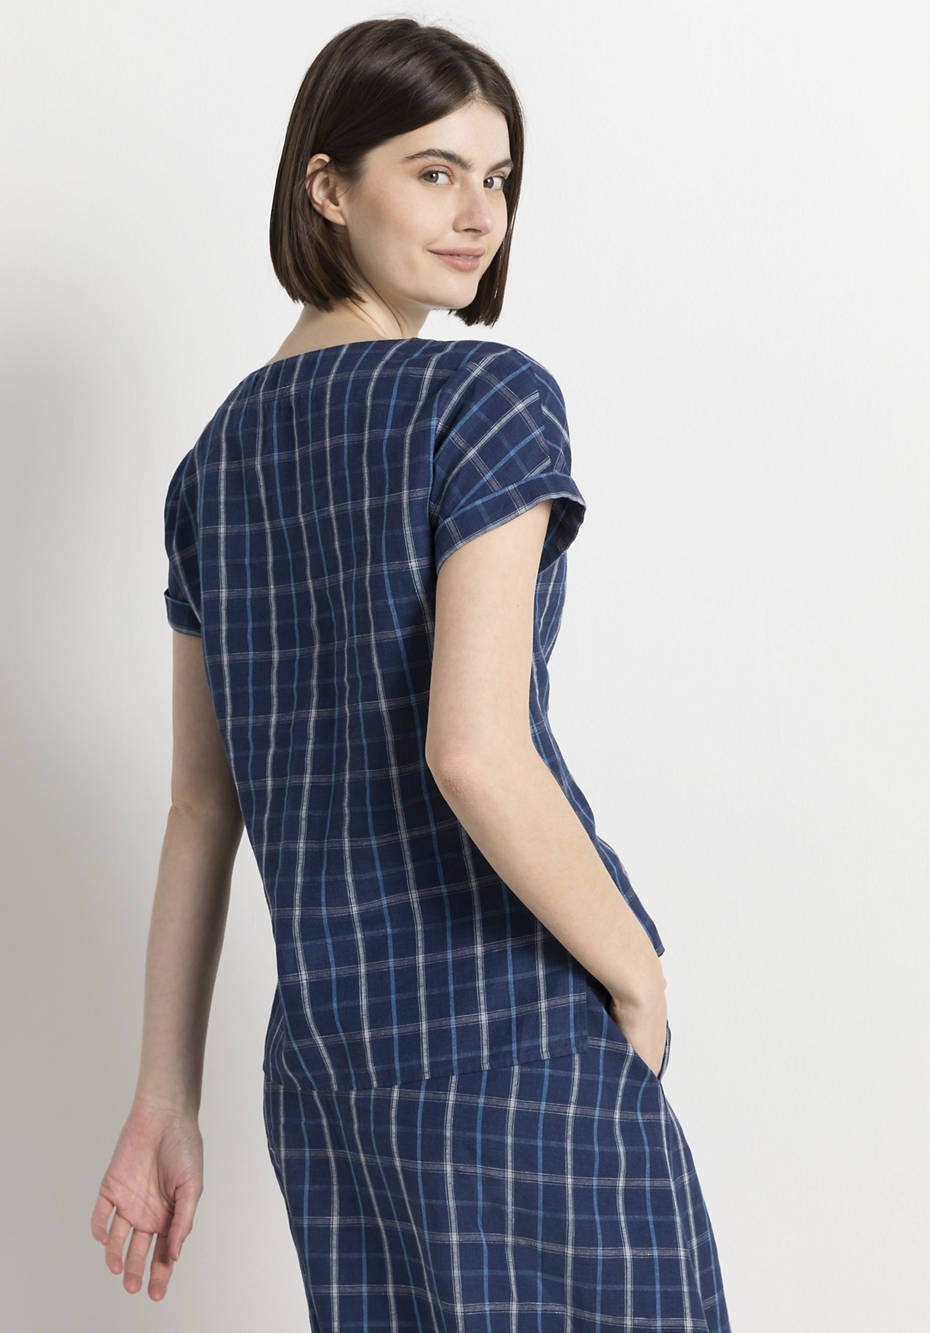 Blouse shirt made of linen with organic cotton